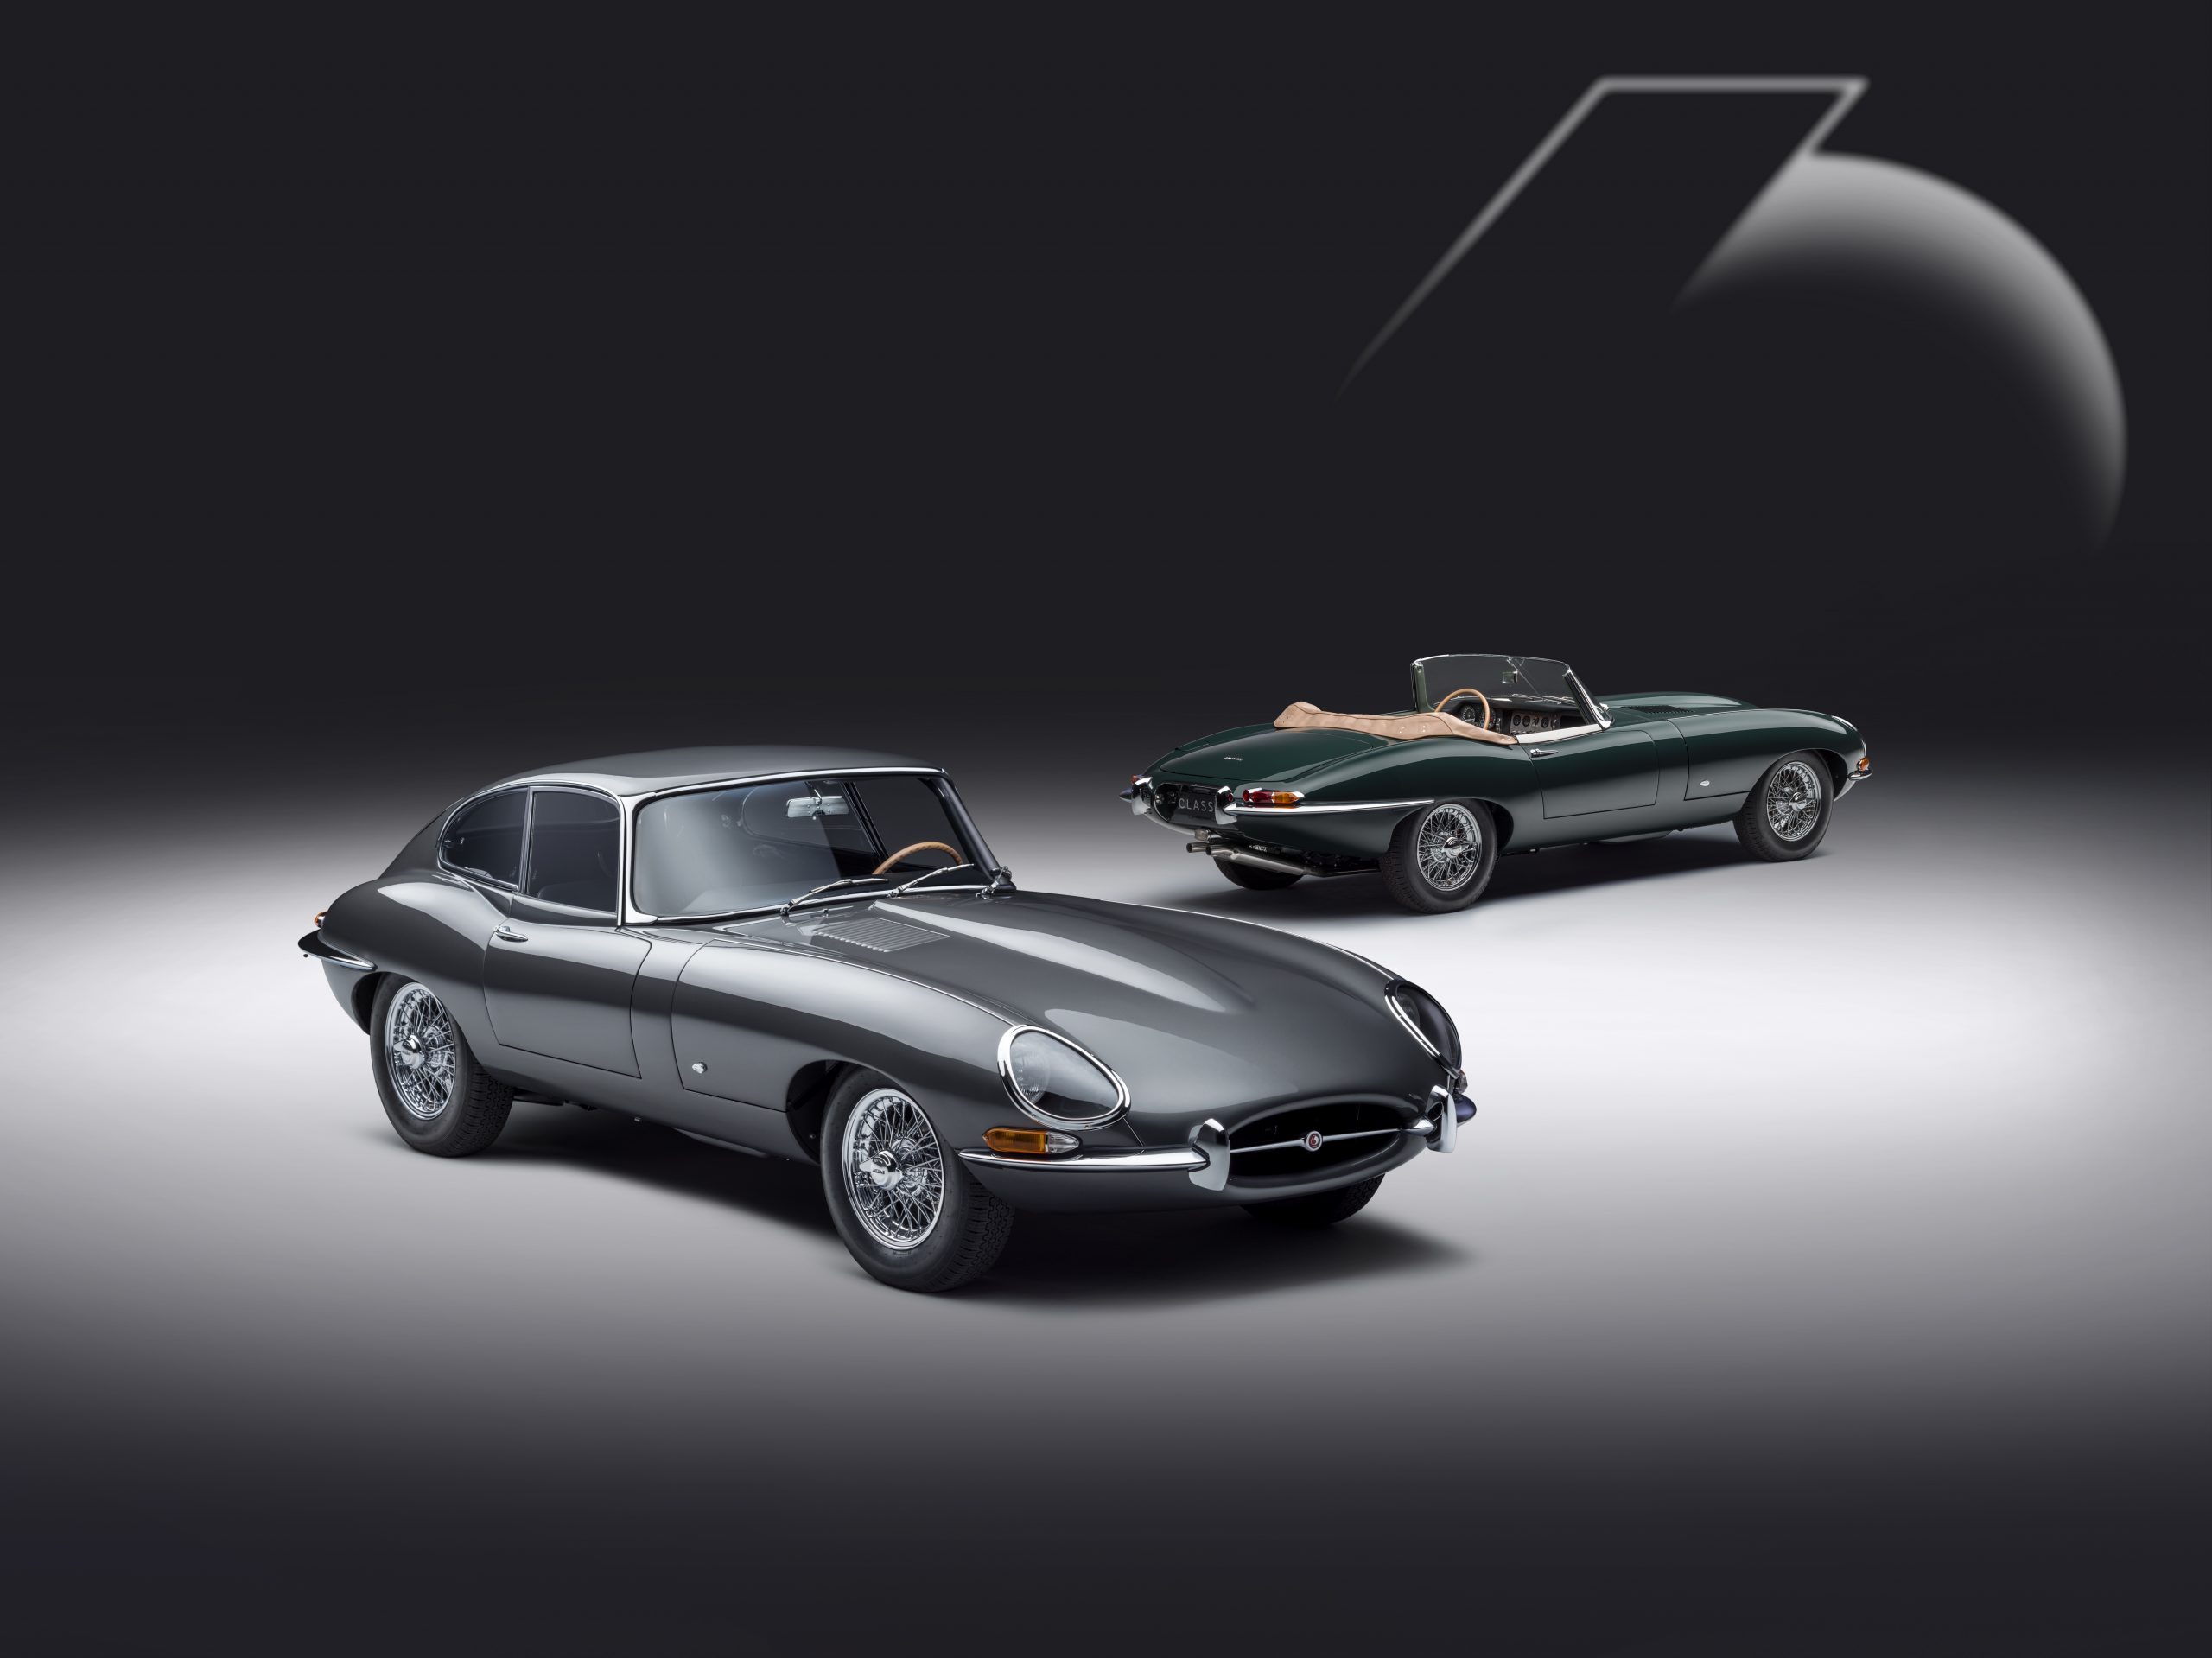 Jaguar E-type 60 gives buyers the chance to relive history